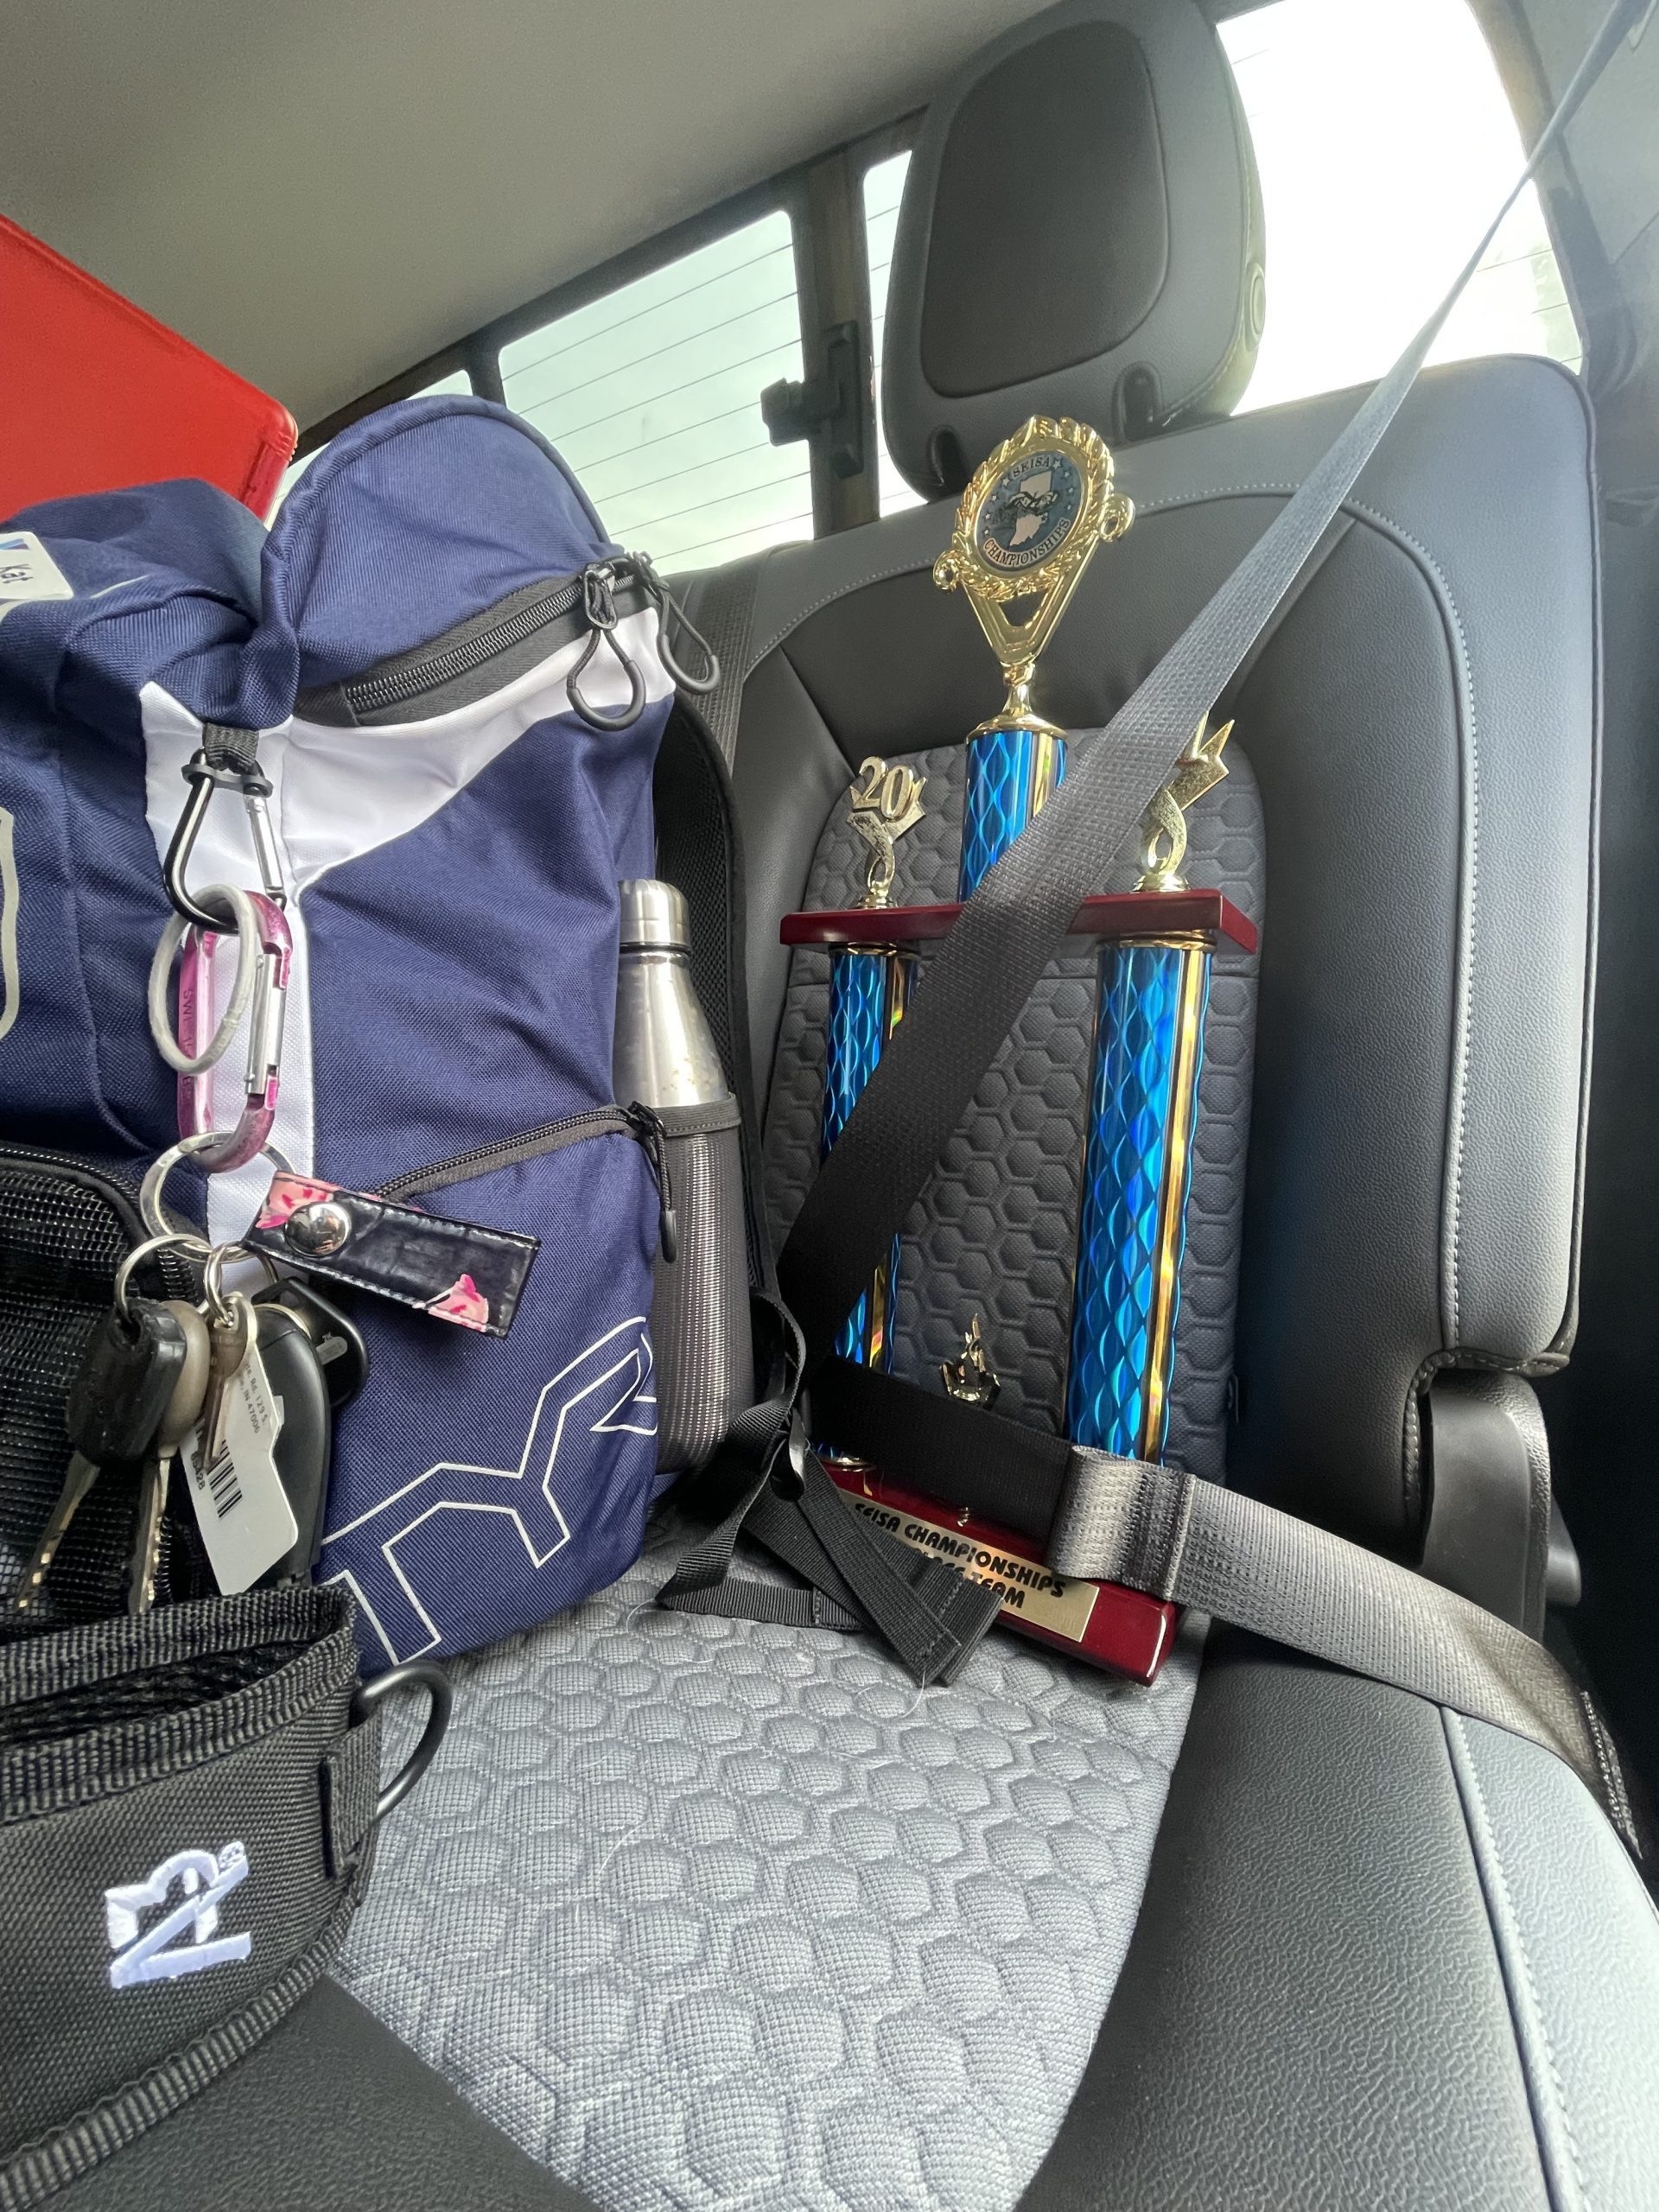 S.E.I.S.A. second place trophy strapped into back seat of the coach car